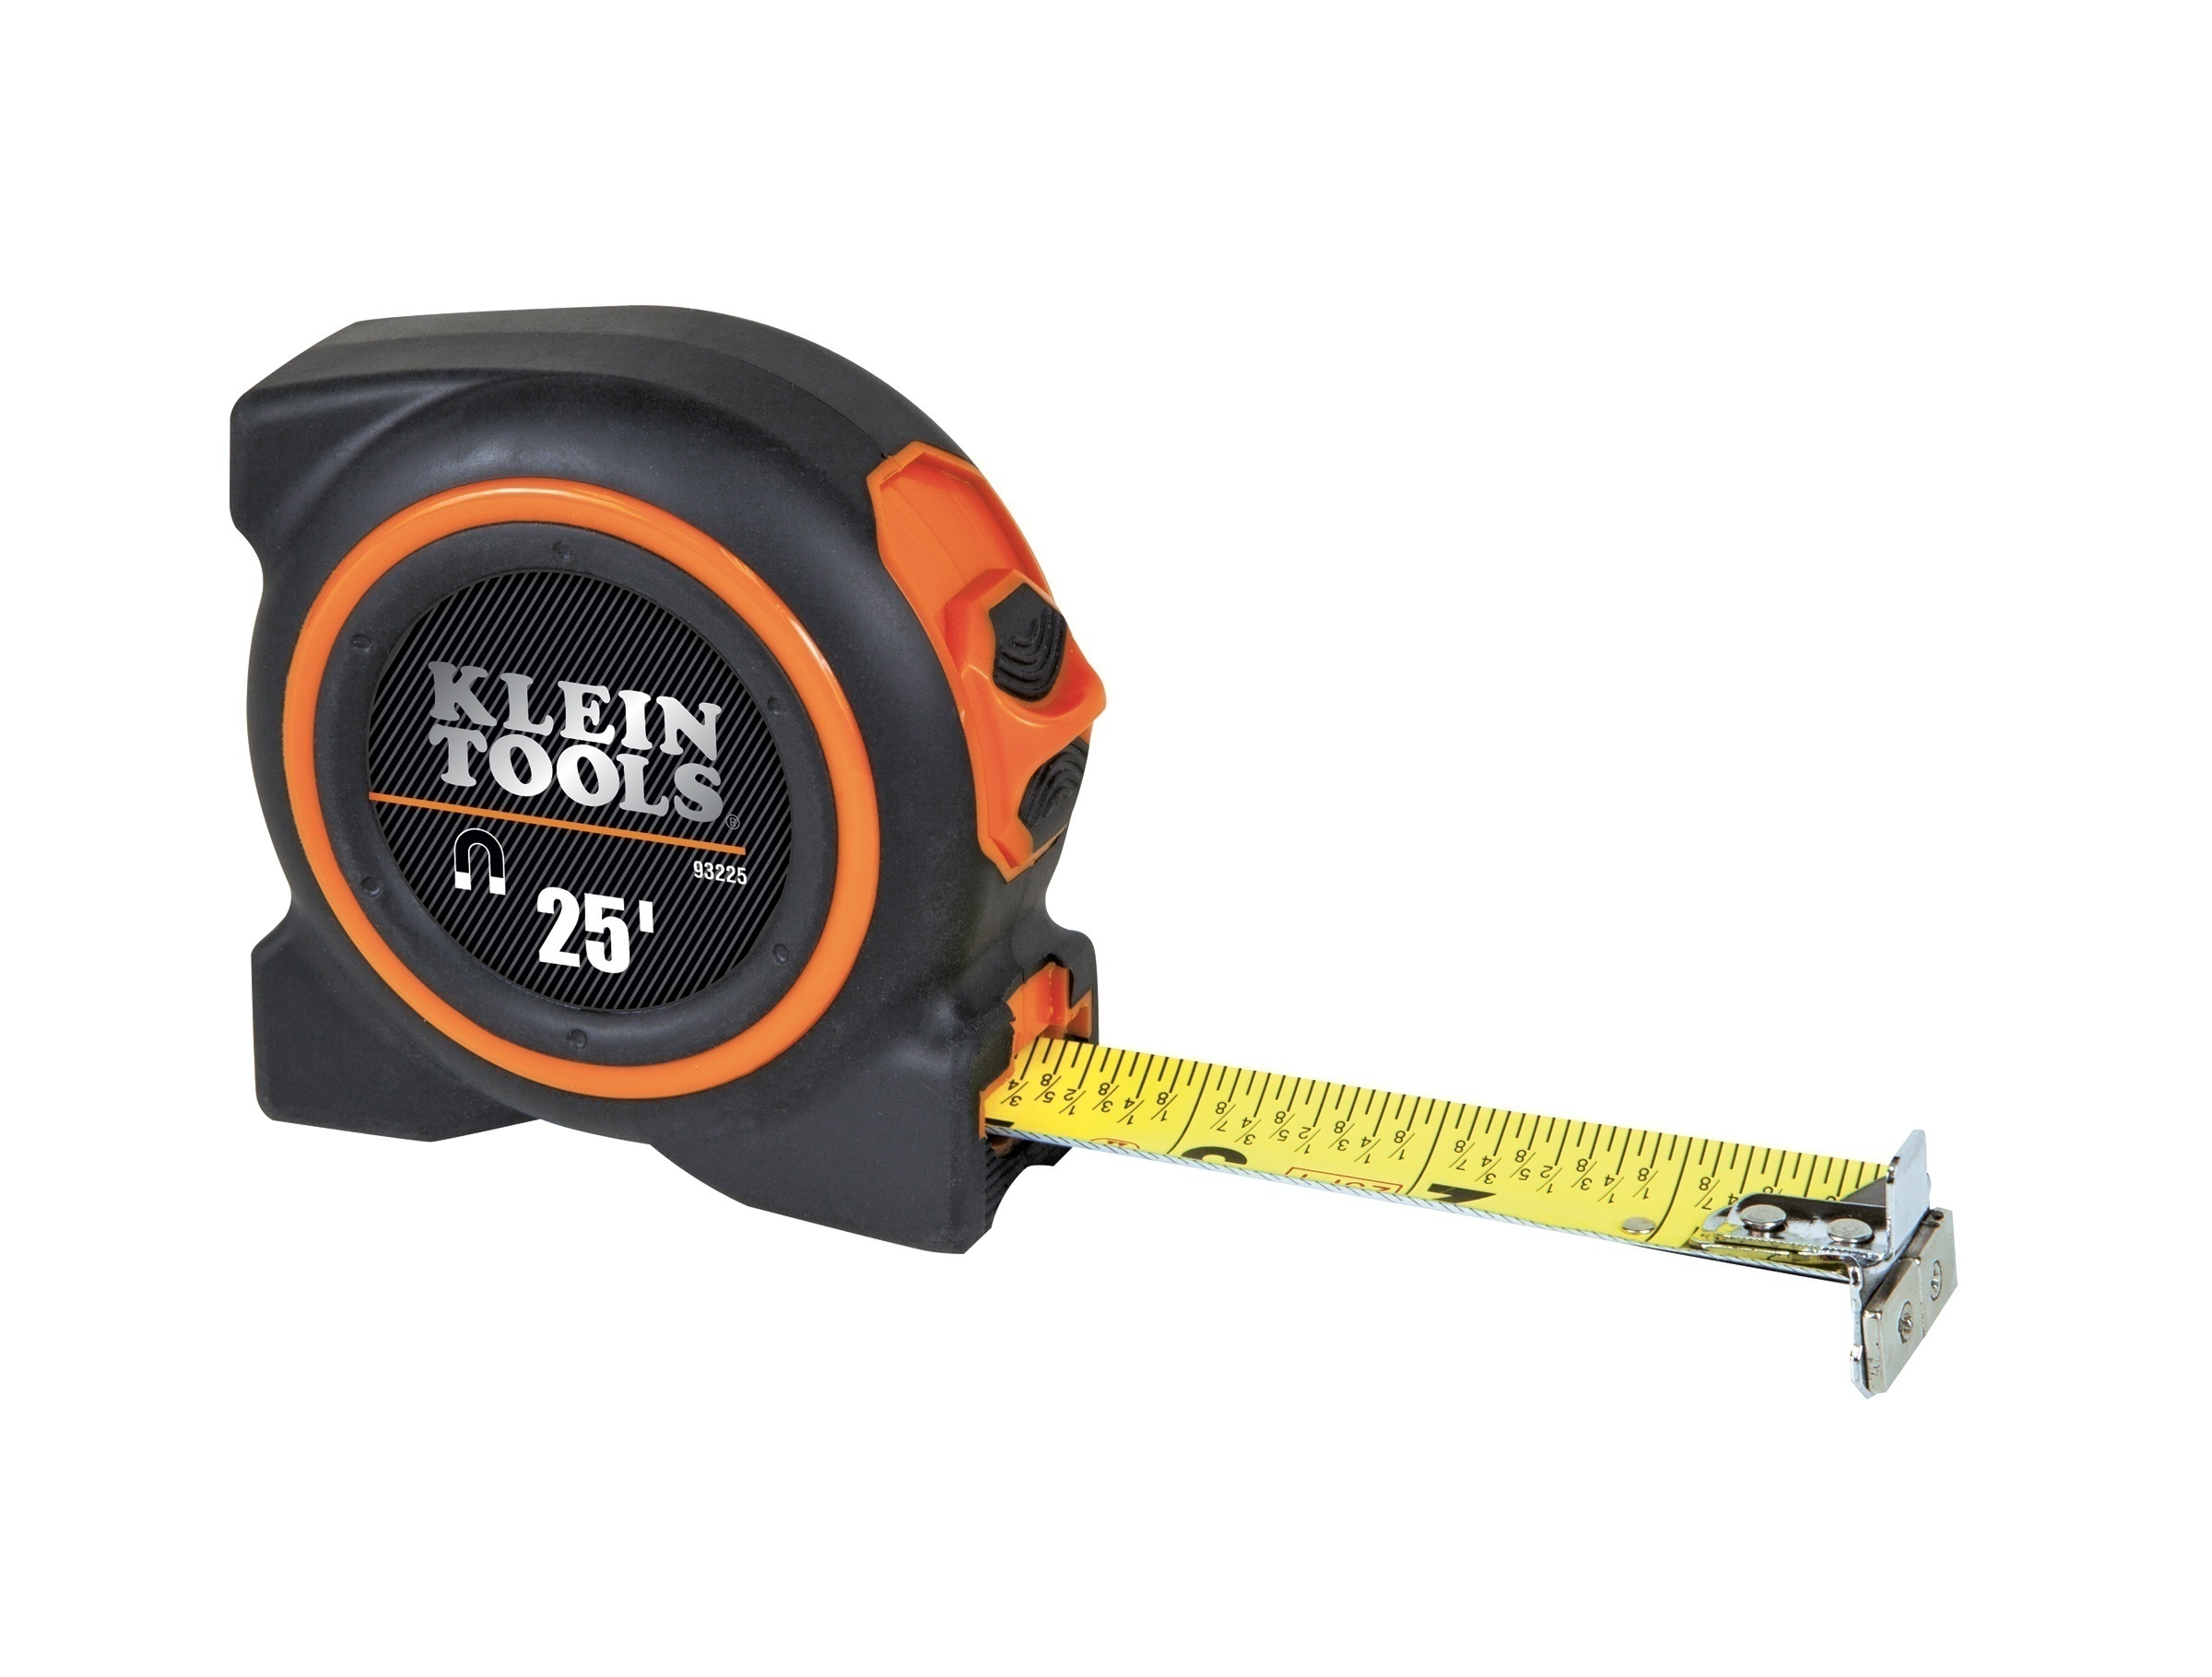 Klein Tools 93225 Tape Measure- 25' Magnetic Double Hook